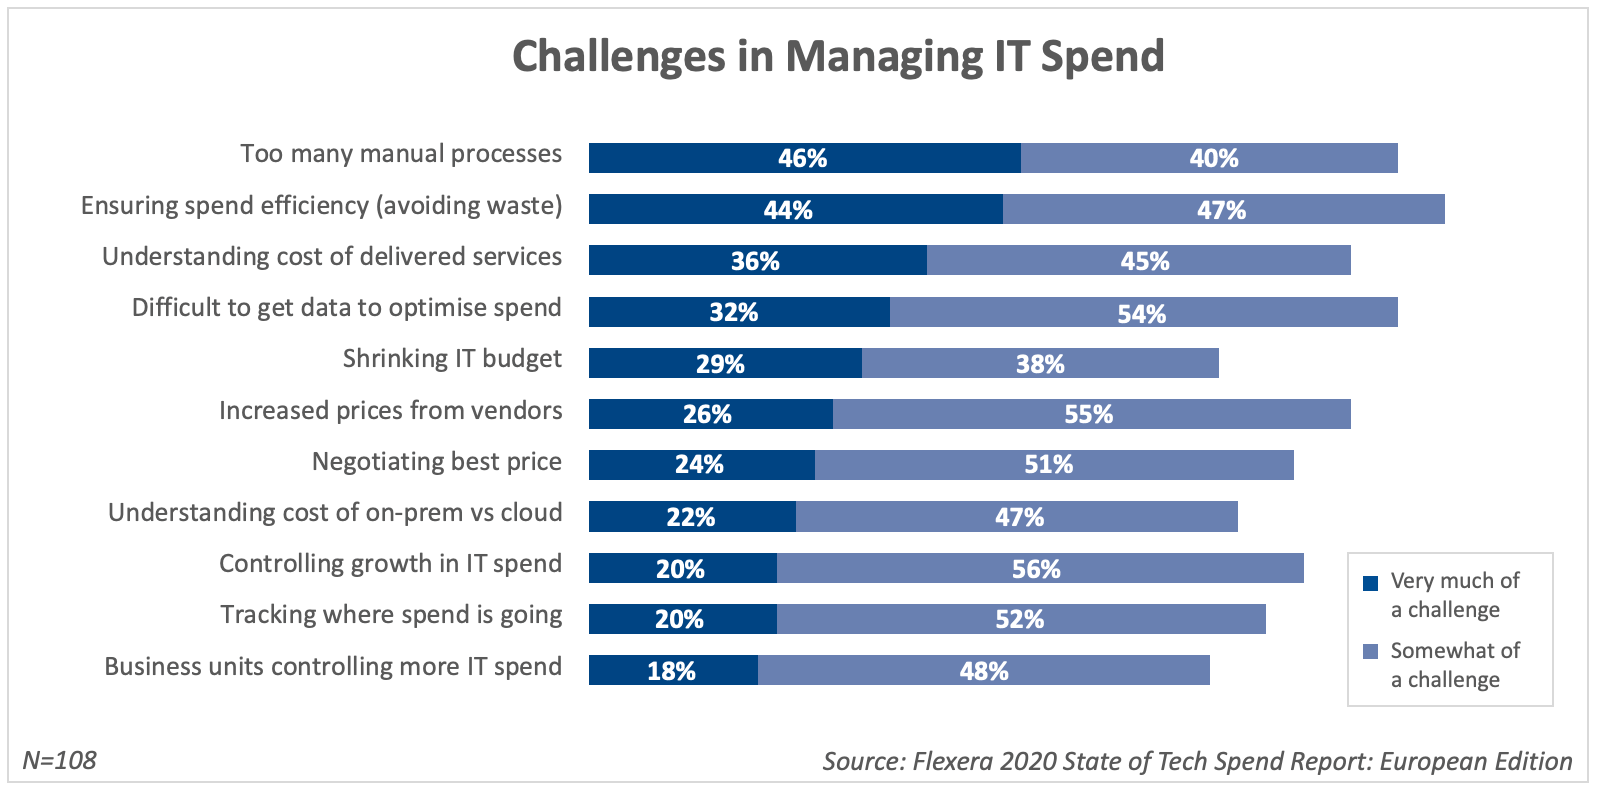 Top challenges in managing spend are manual processes, avoiding waste, understanding the cost of delivered services, and getting the data needed to optimise spend